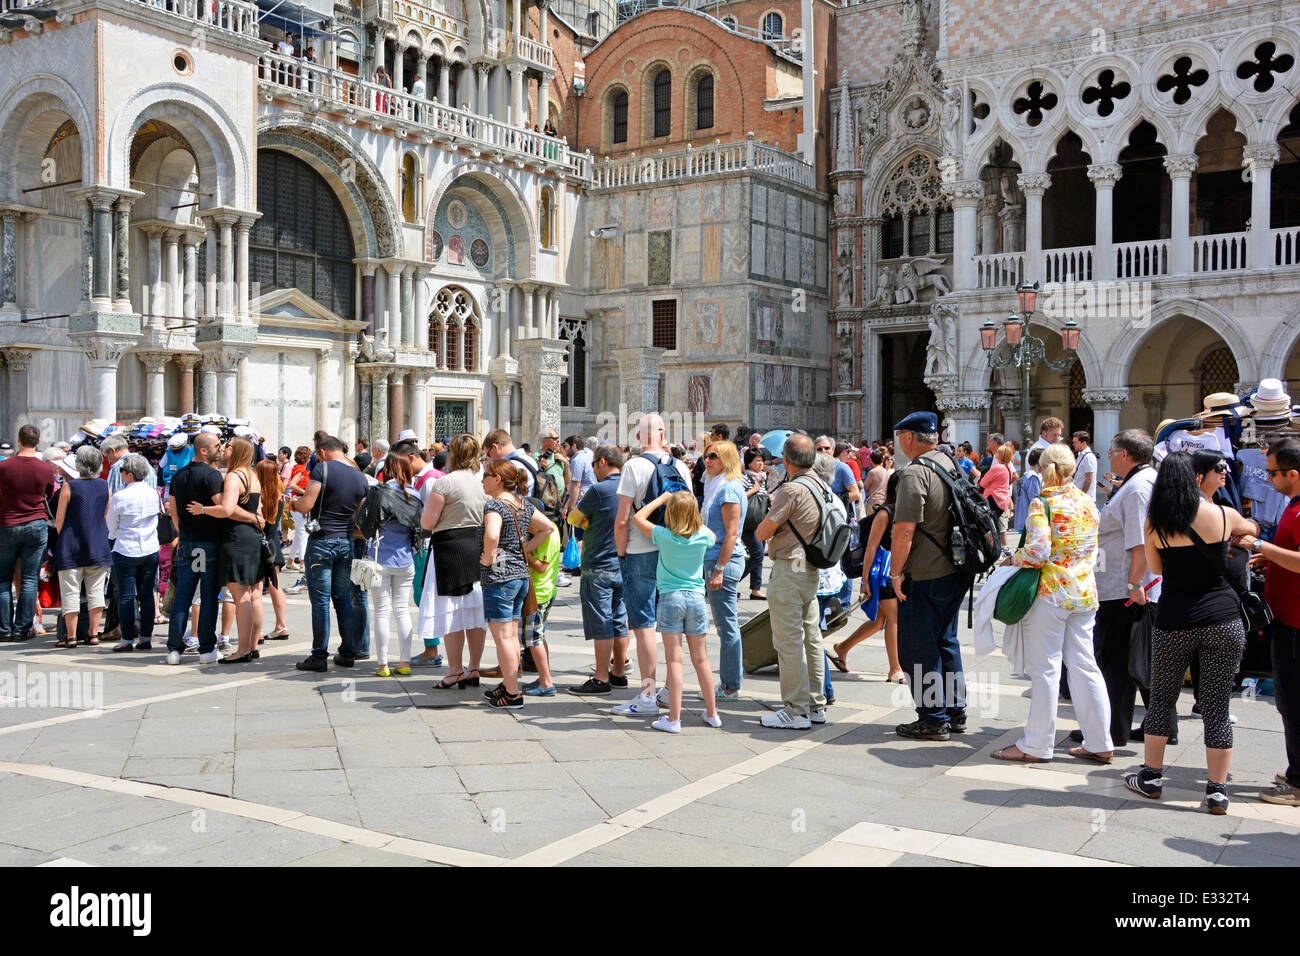 People & long queue of casually dressed summer tourists queuing waiting outside Italian Doges Palace towards historical Stock Photo